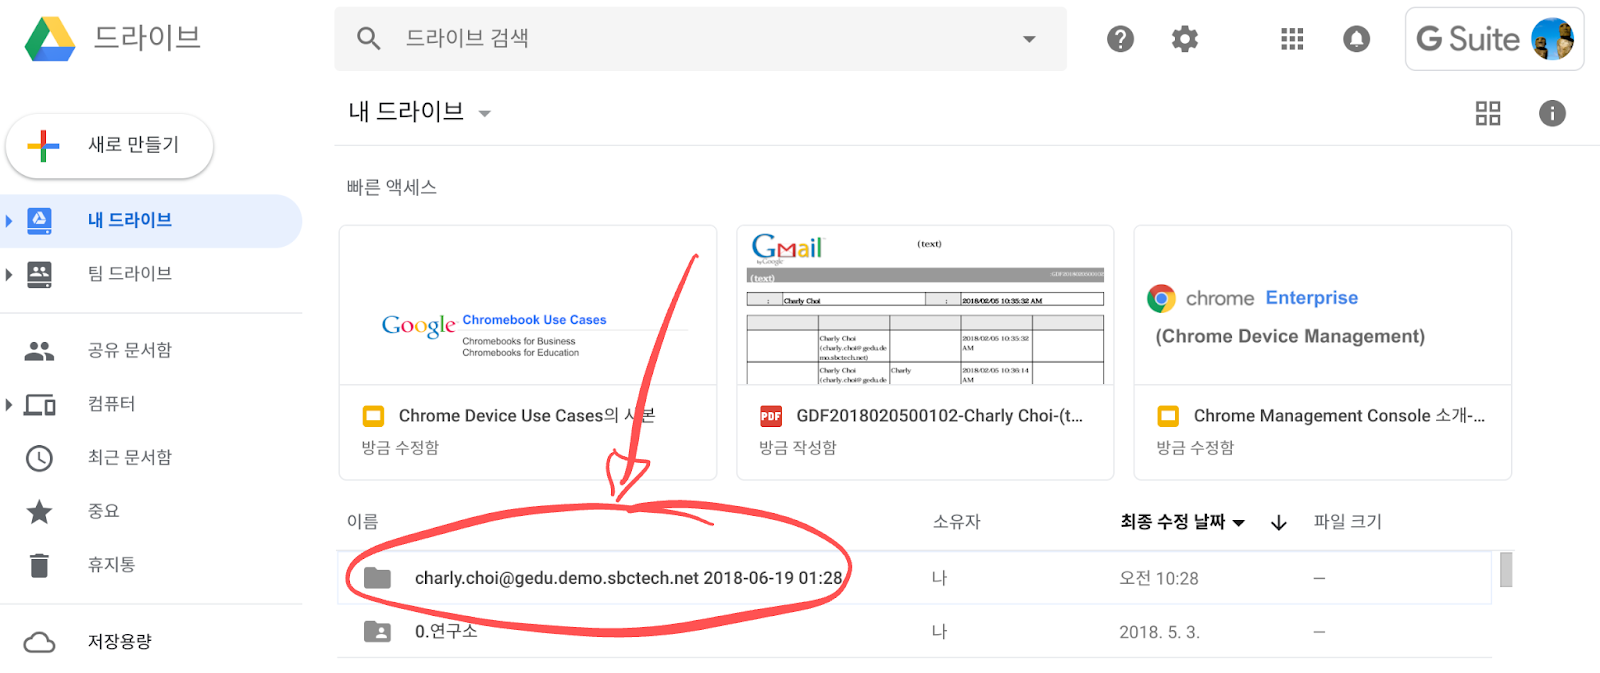 g suite how to add new email account